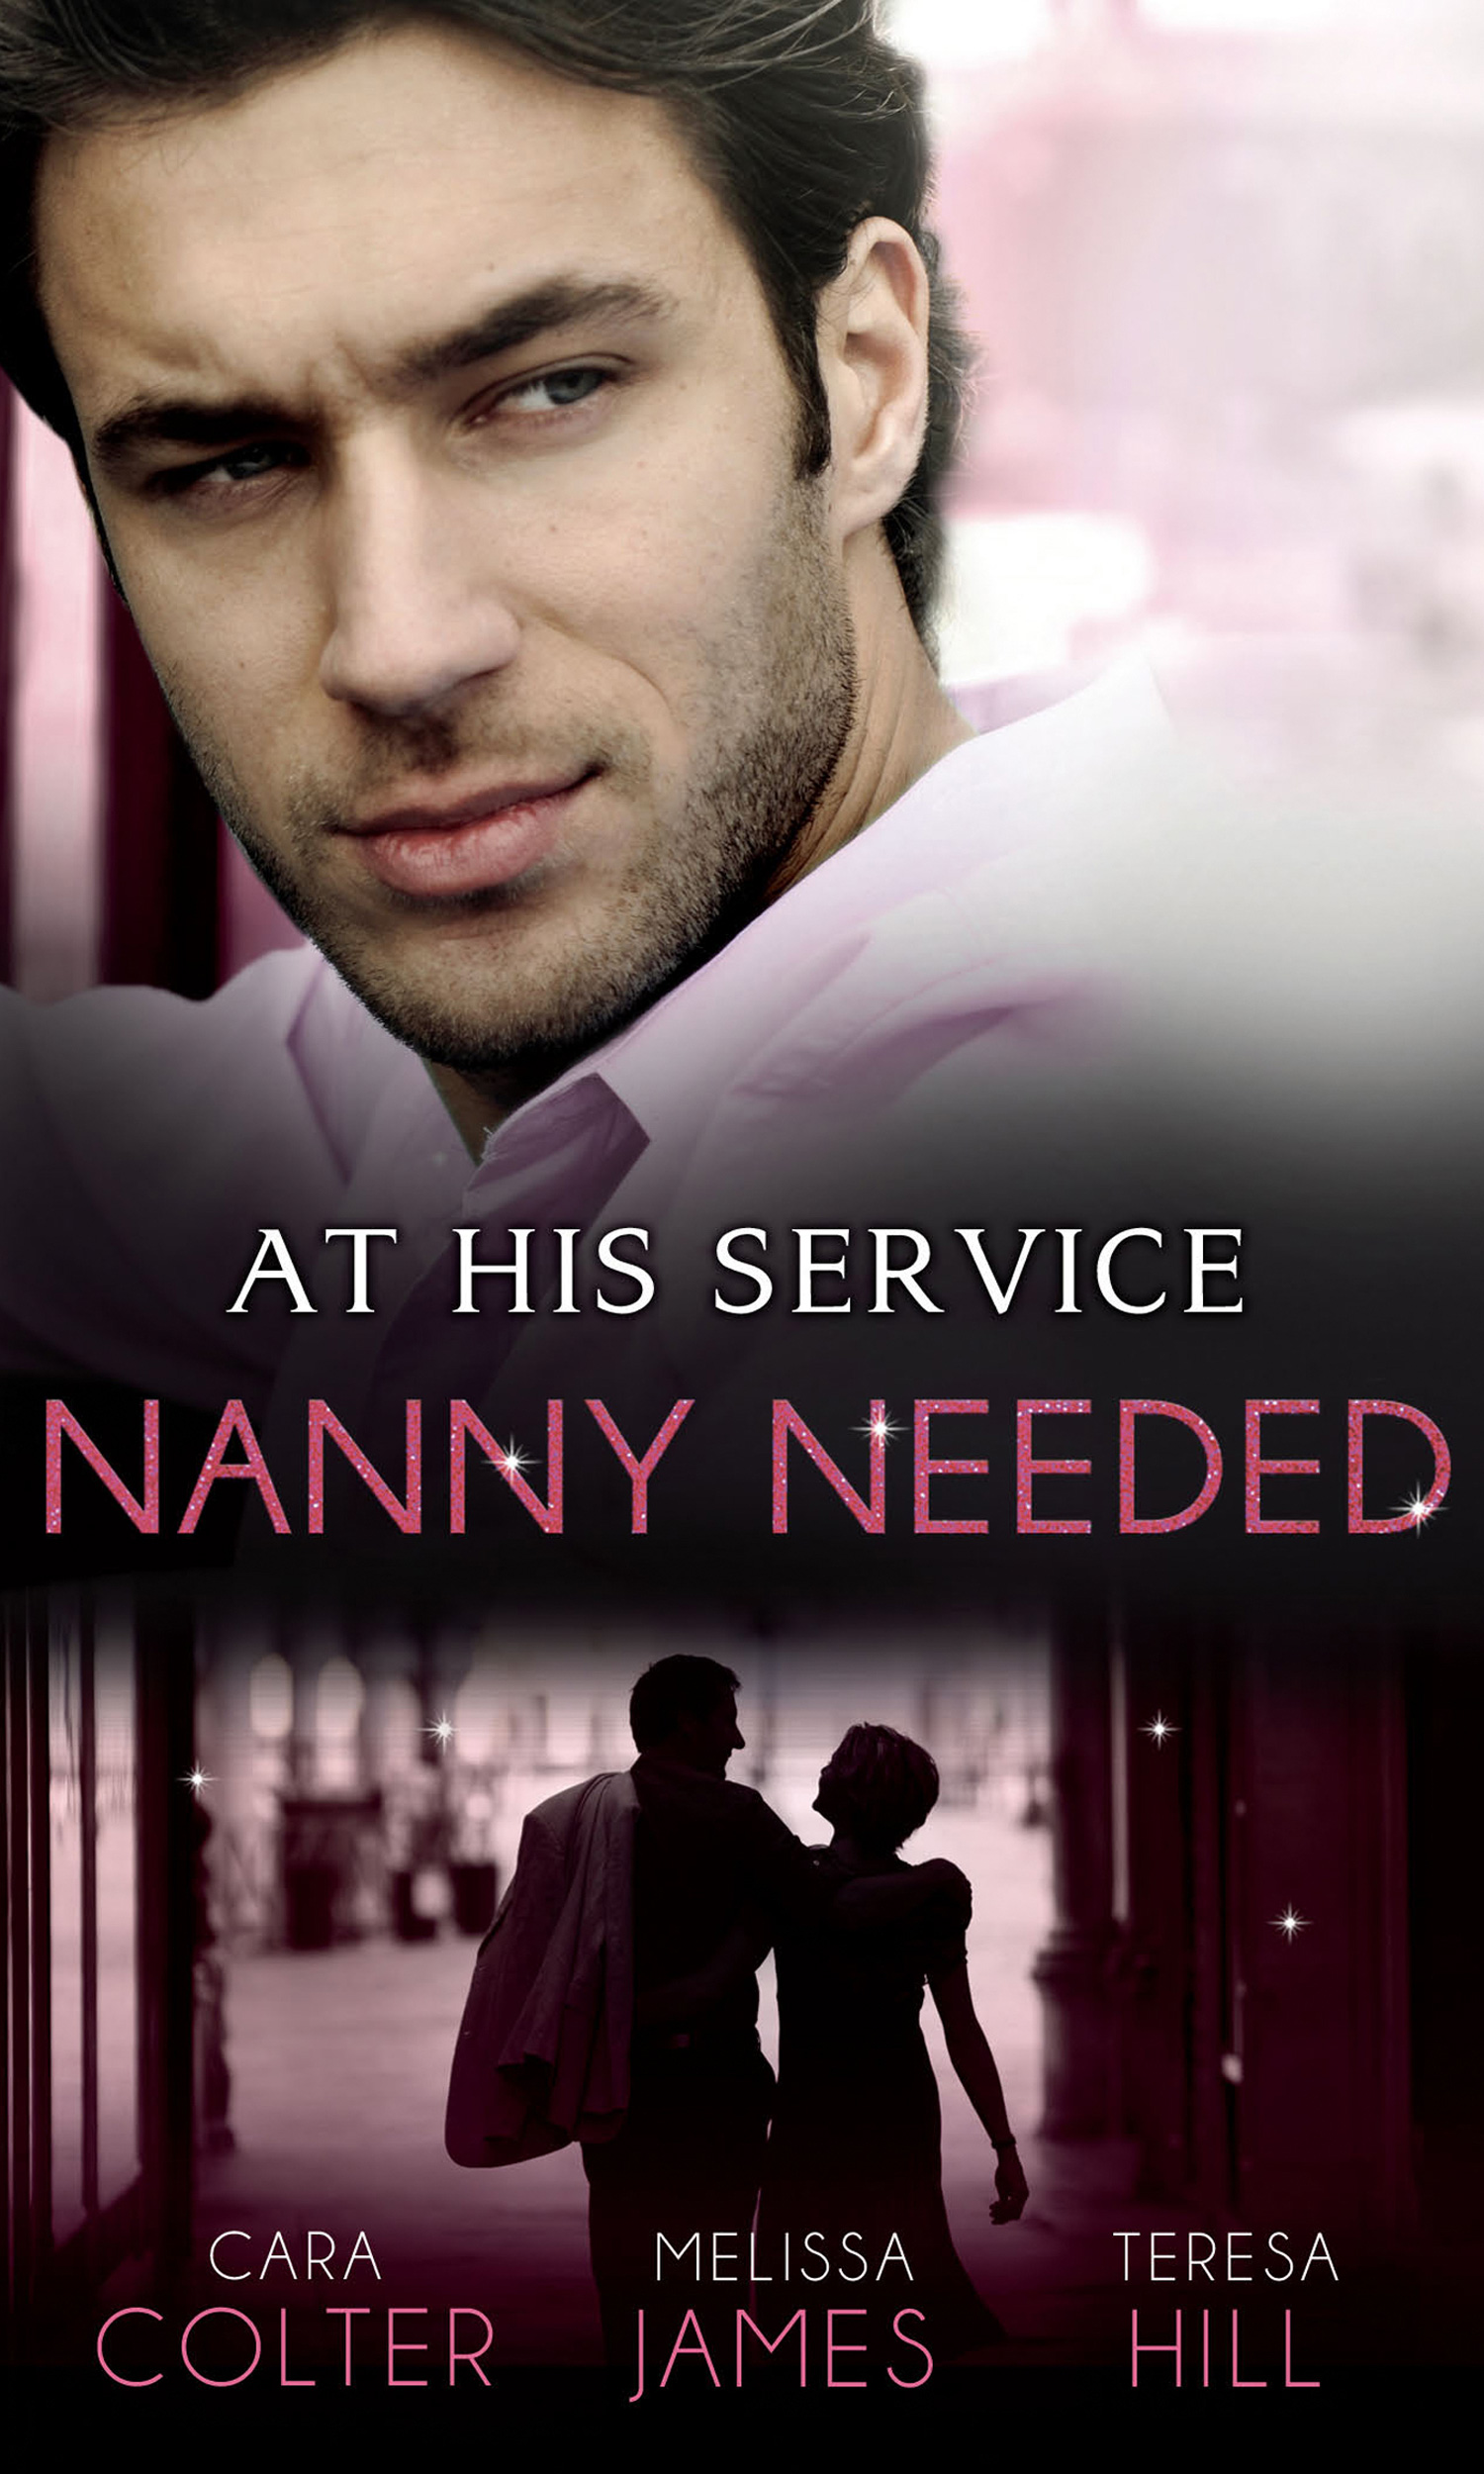 At His Service: Nanny Needed